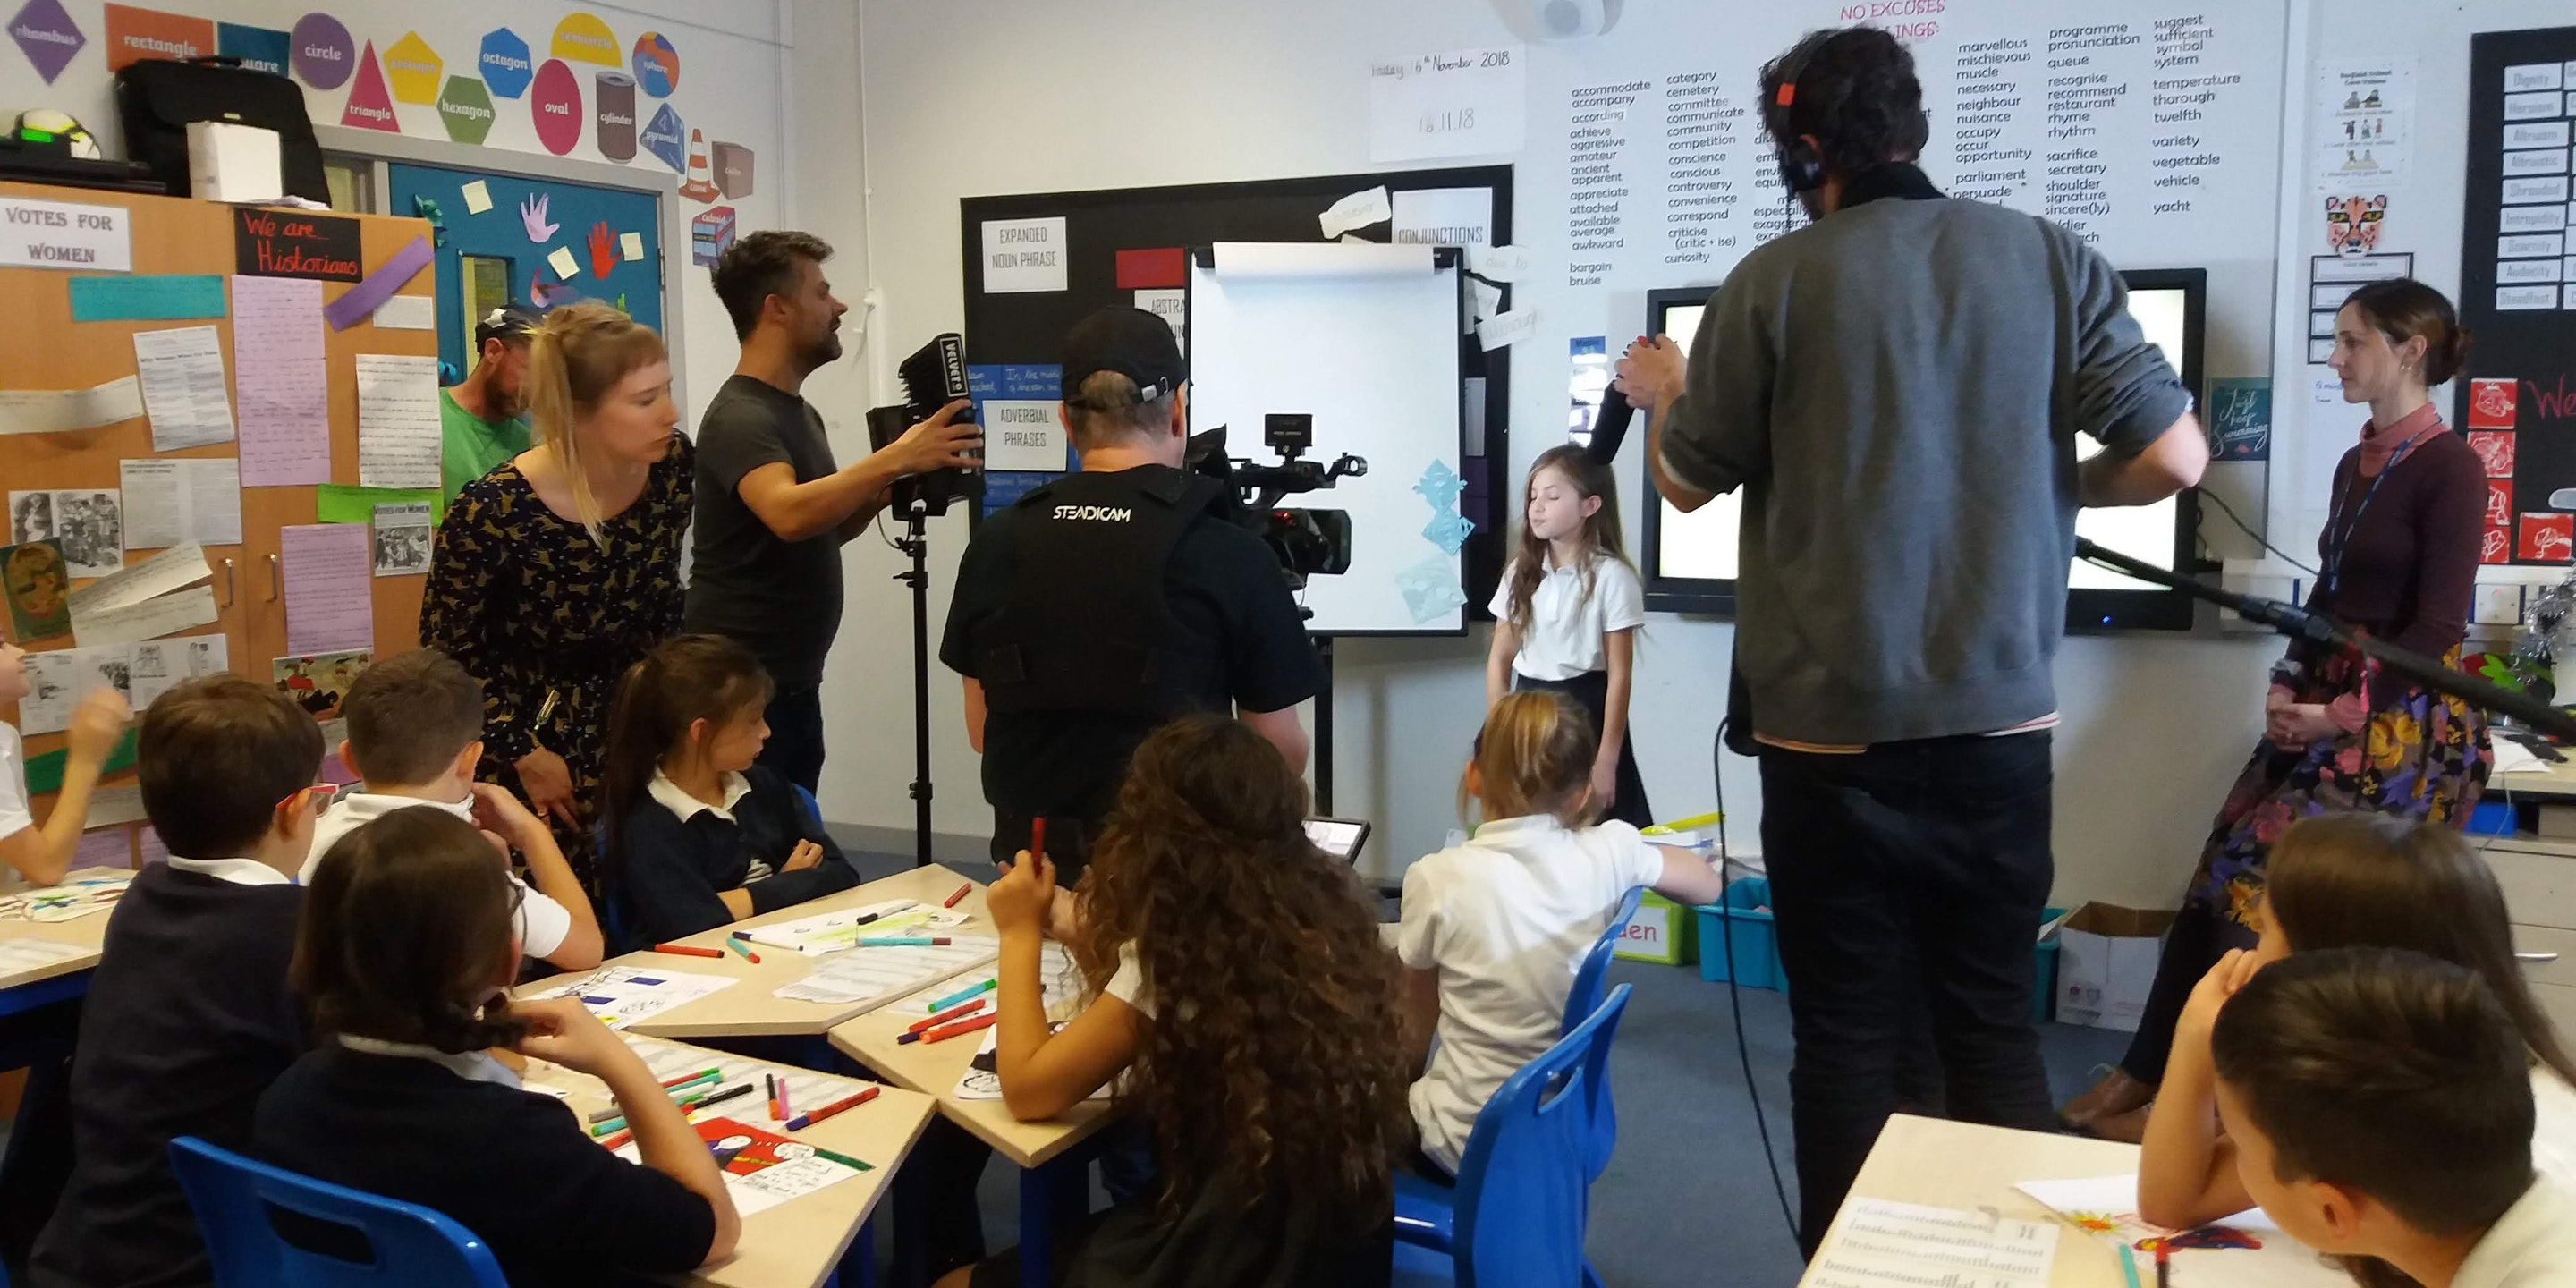 Film made for BHT wins bronze at Charity Film Awards